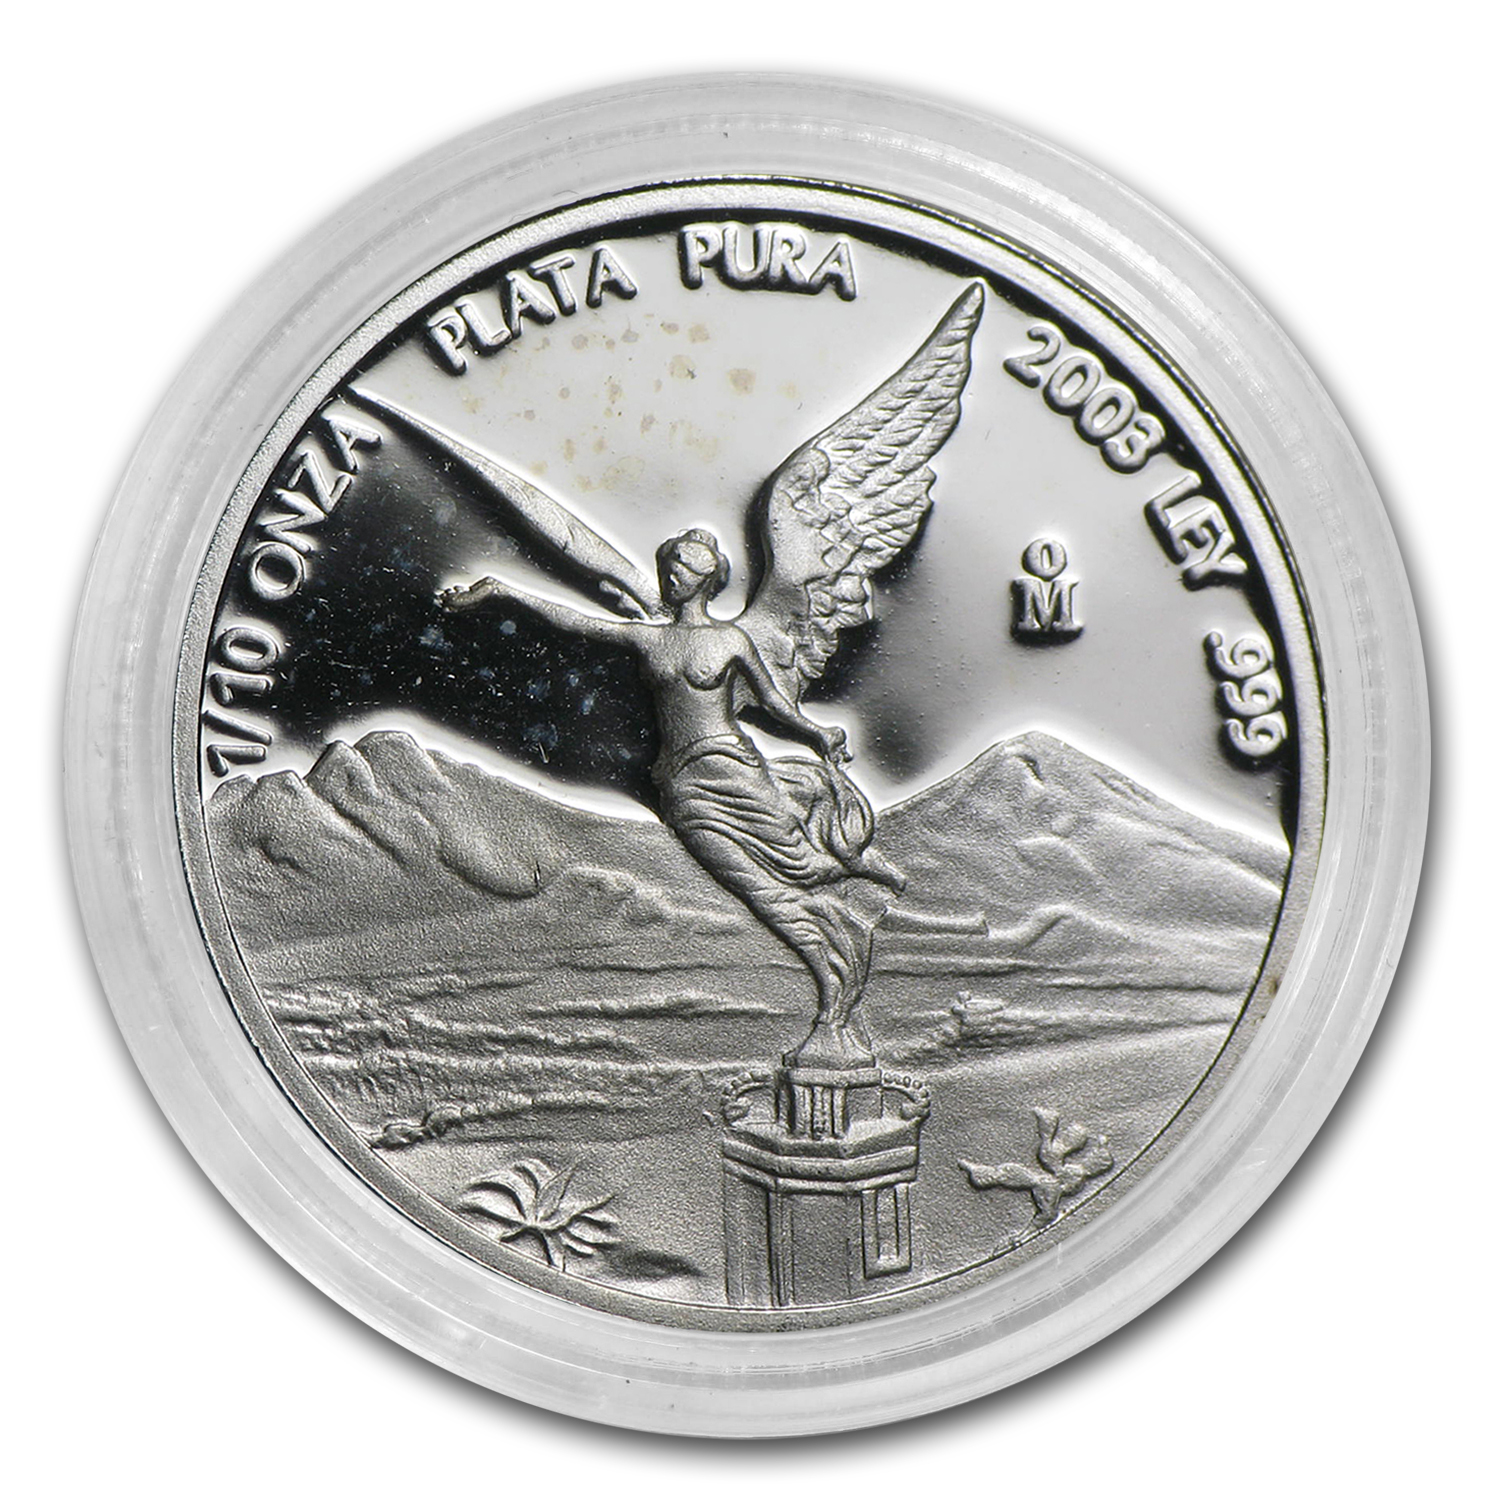 2003 Mexico 1/10 oz Silver Libertad Proof (In Capsule)